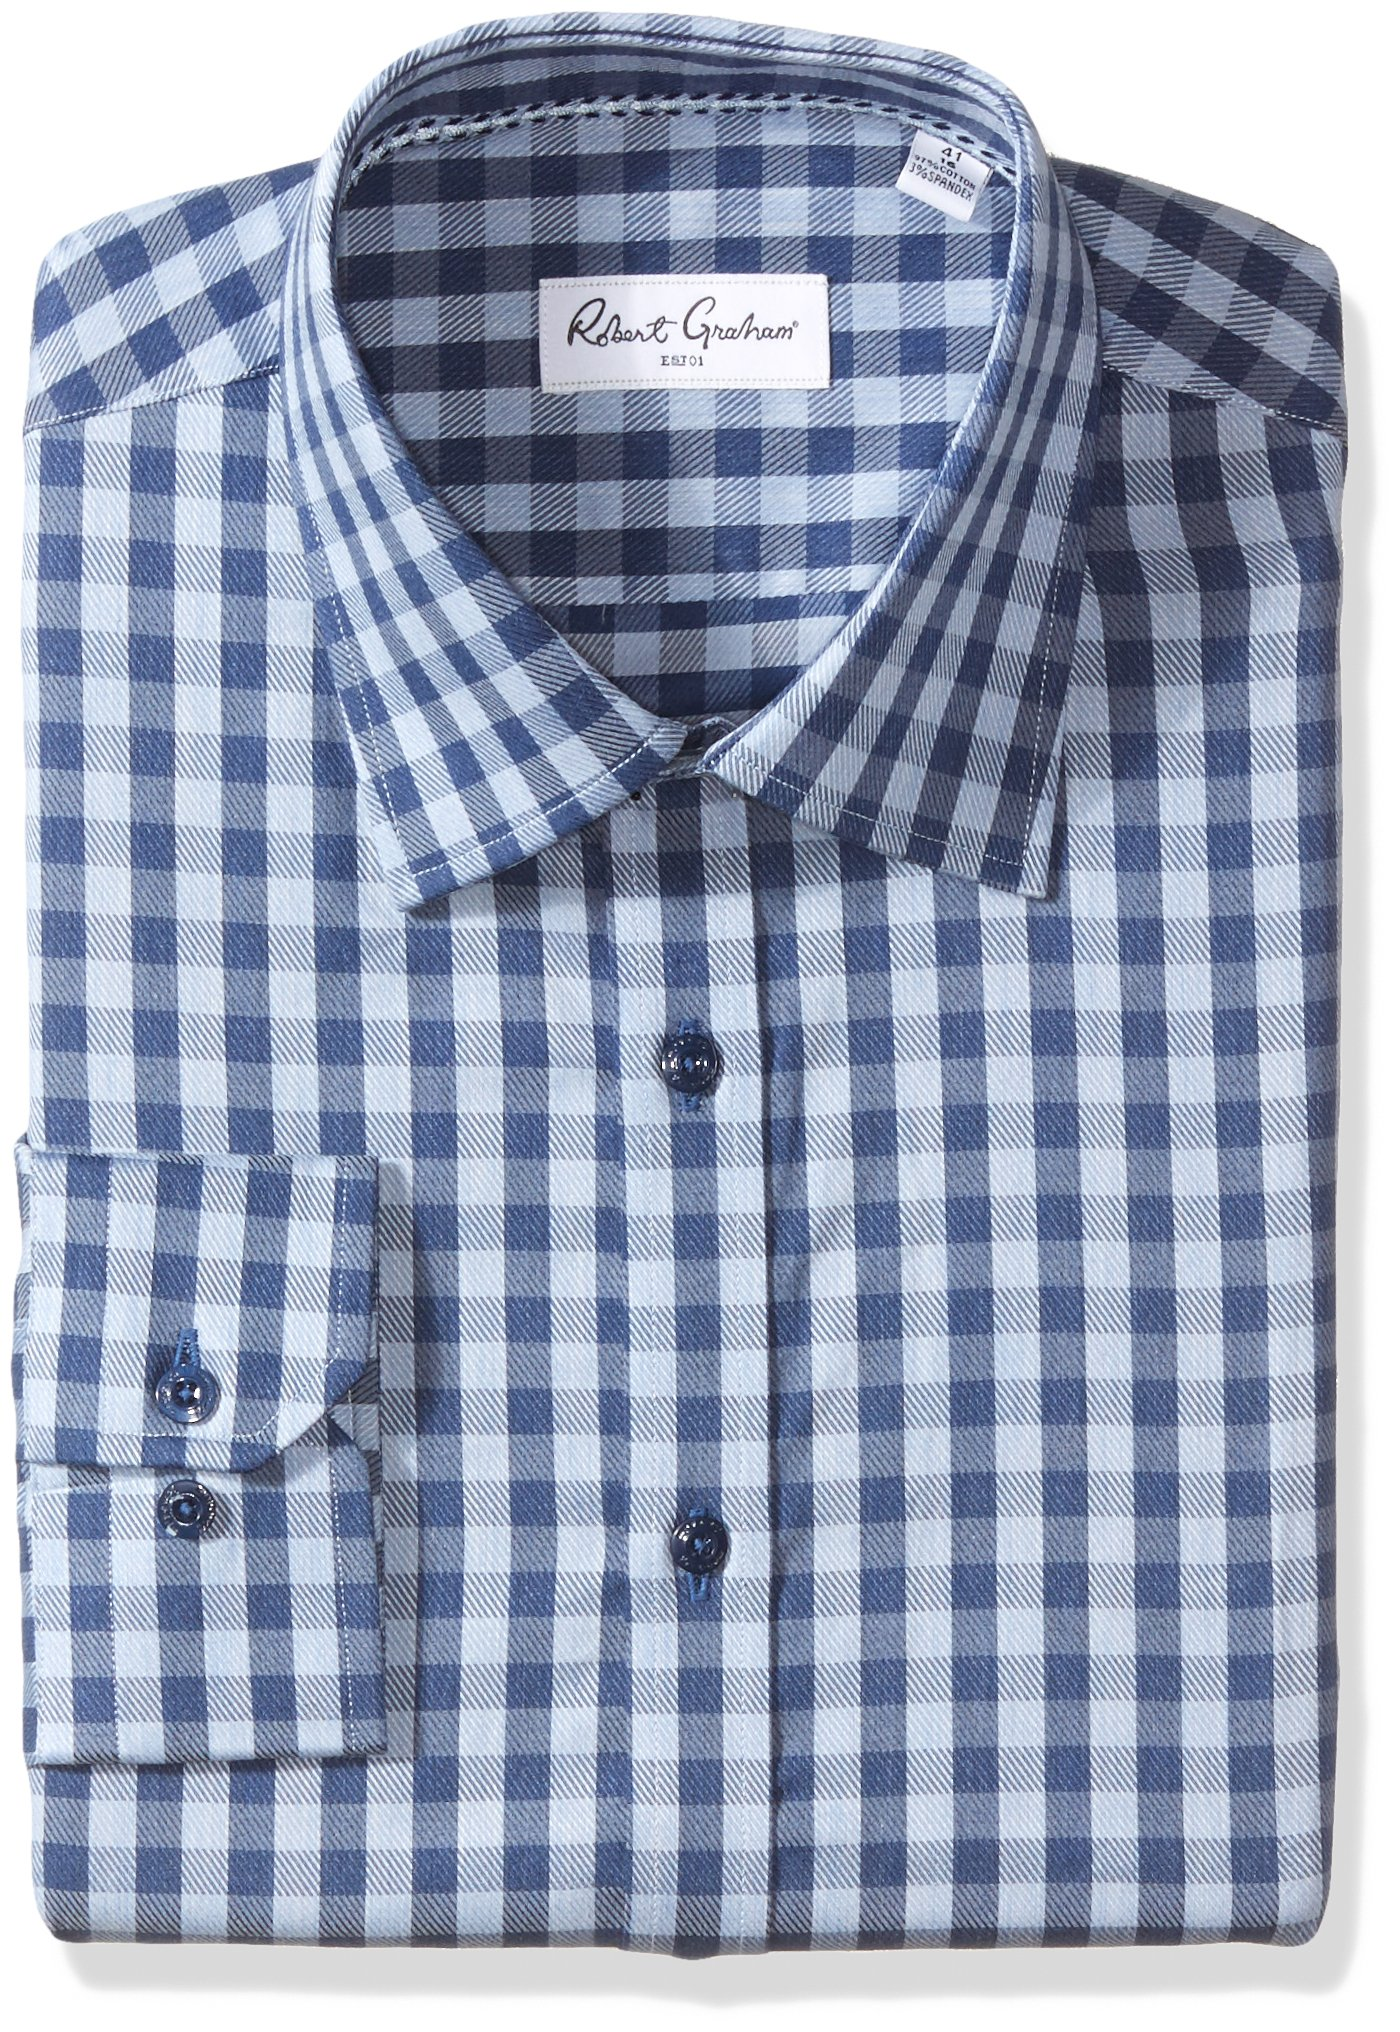 Robert Graham Men's Kade Regular Fit Check Dress Shirt, Blue, 18'' Neck 36.5'' Sleeve by Robert Graham